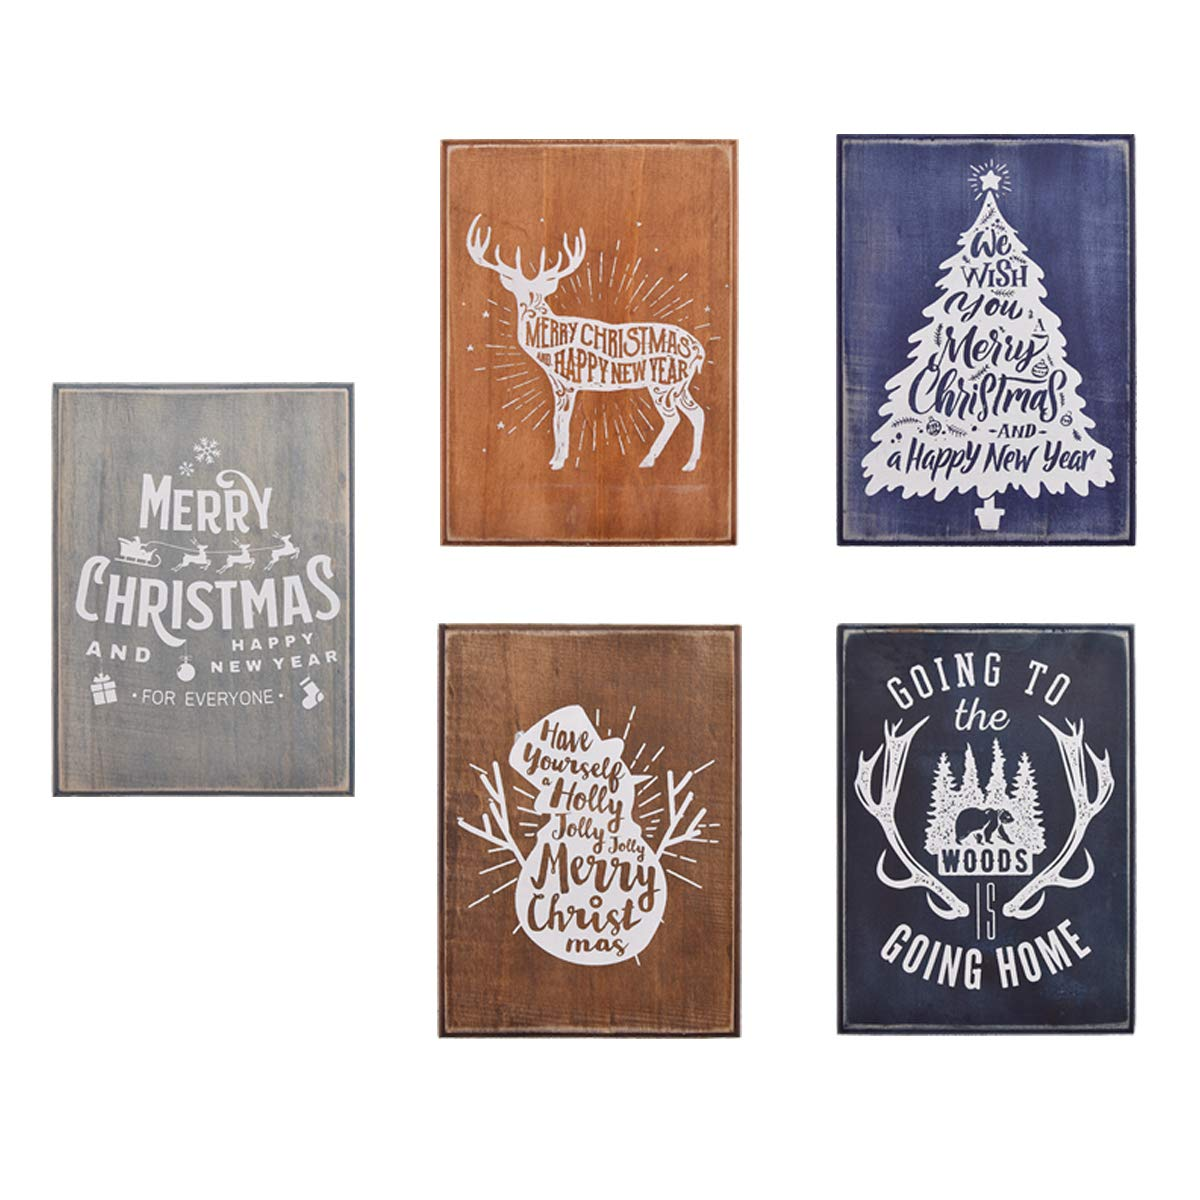 YeulionCraft Christmas Theme Home Decoratio Self-Adhesive Silk Screen Printing Stencil Mesh Transfers with Five Decorative Wood Plank for DIY T-Shirt Pillow Fabric Painting Paper Decoration Wall Decor